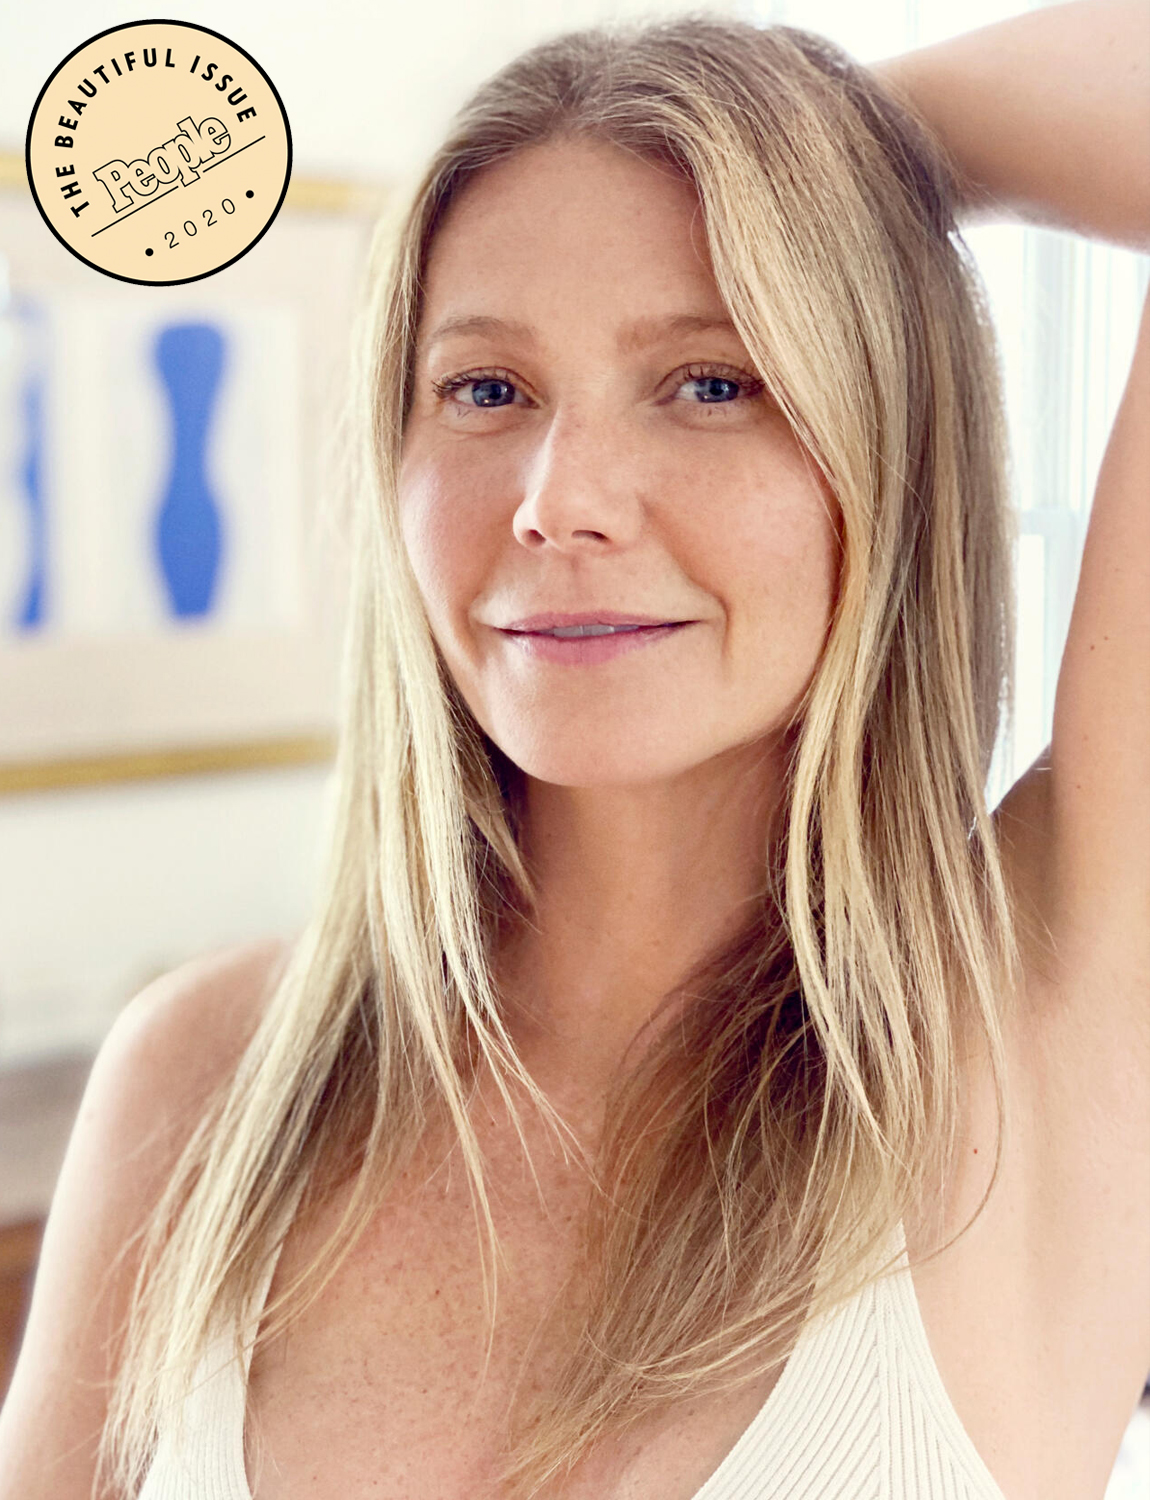 Gwyneth Paltrow Goes Makeup Free In